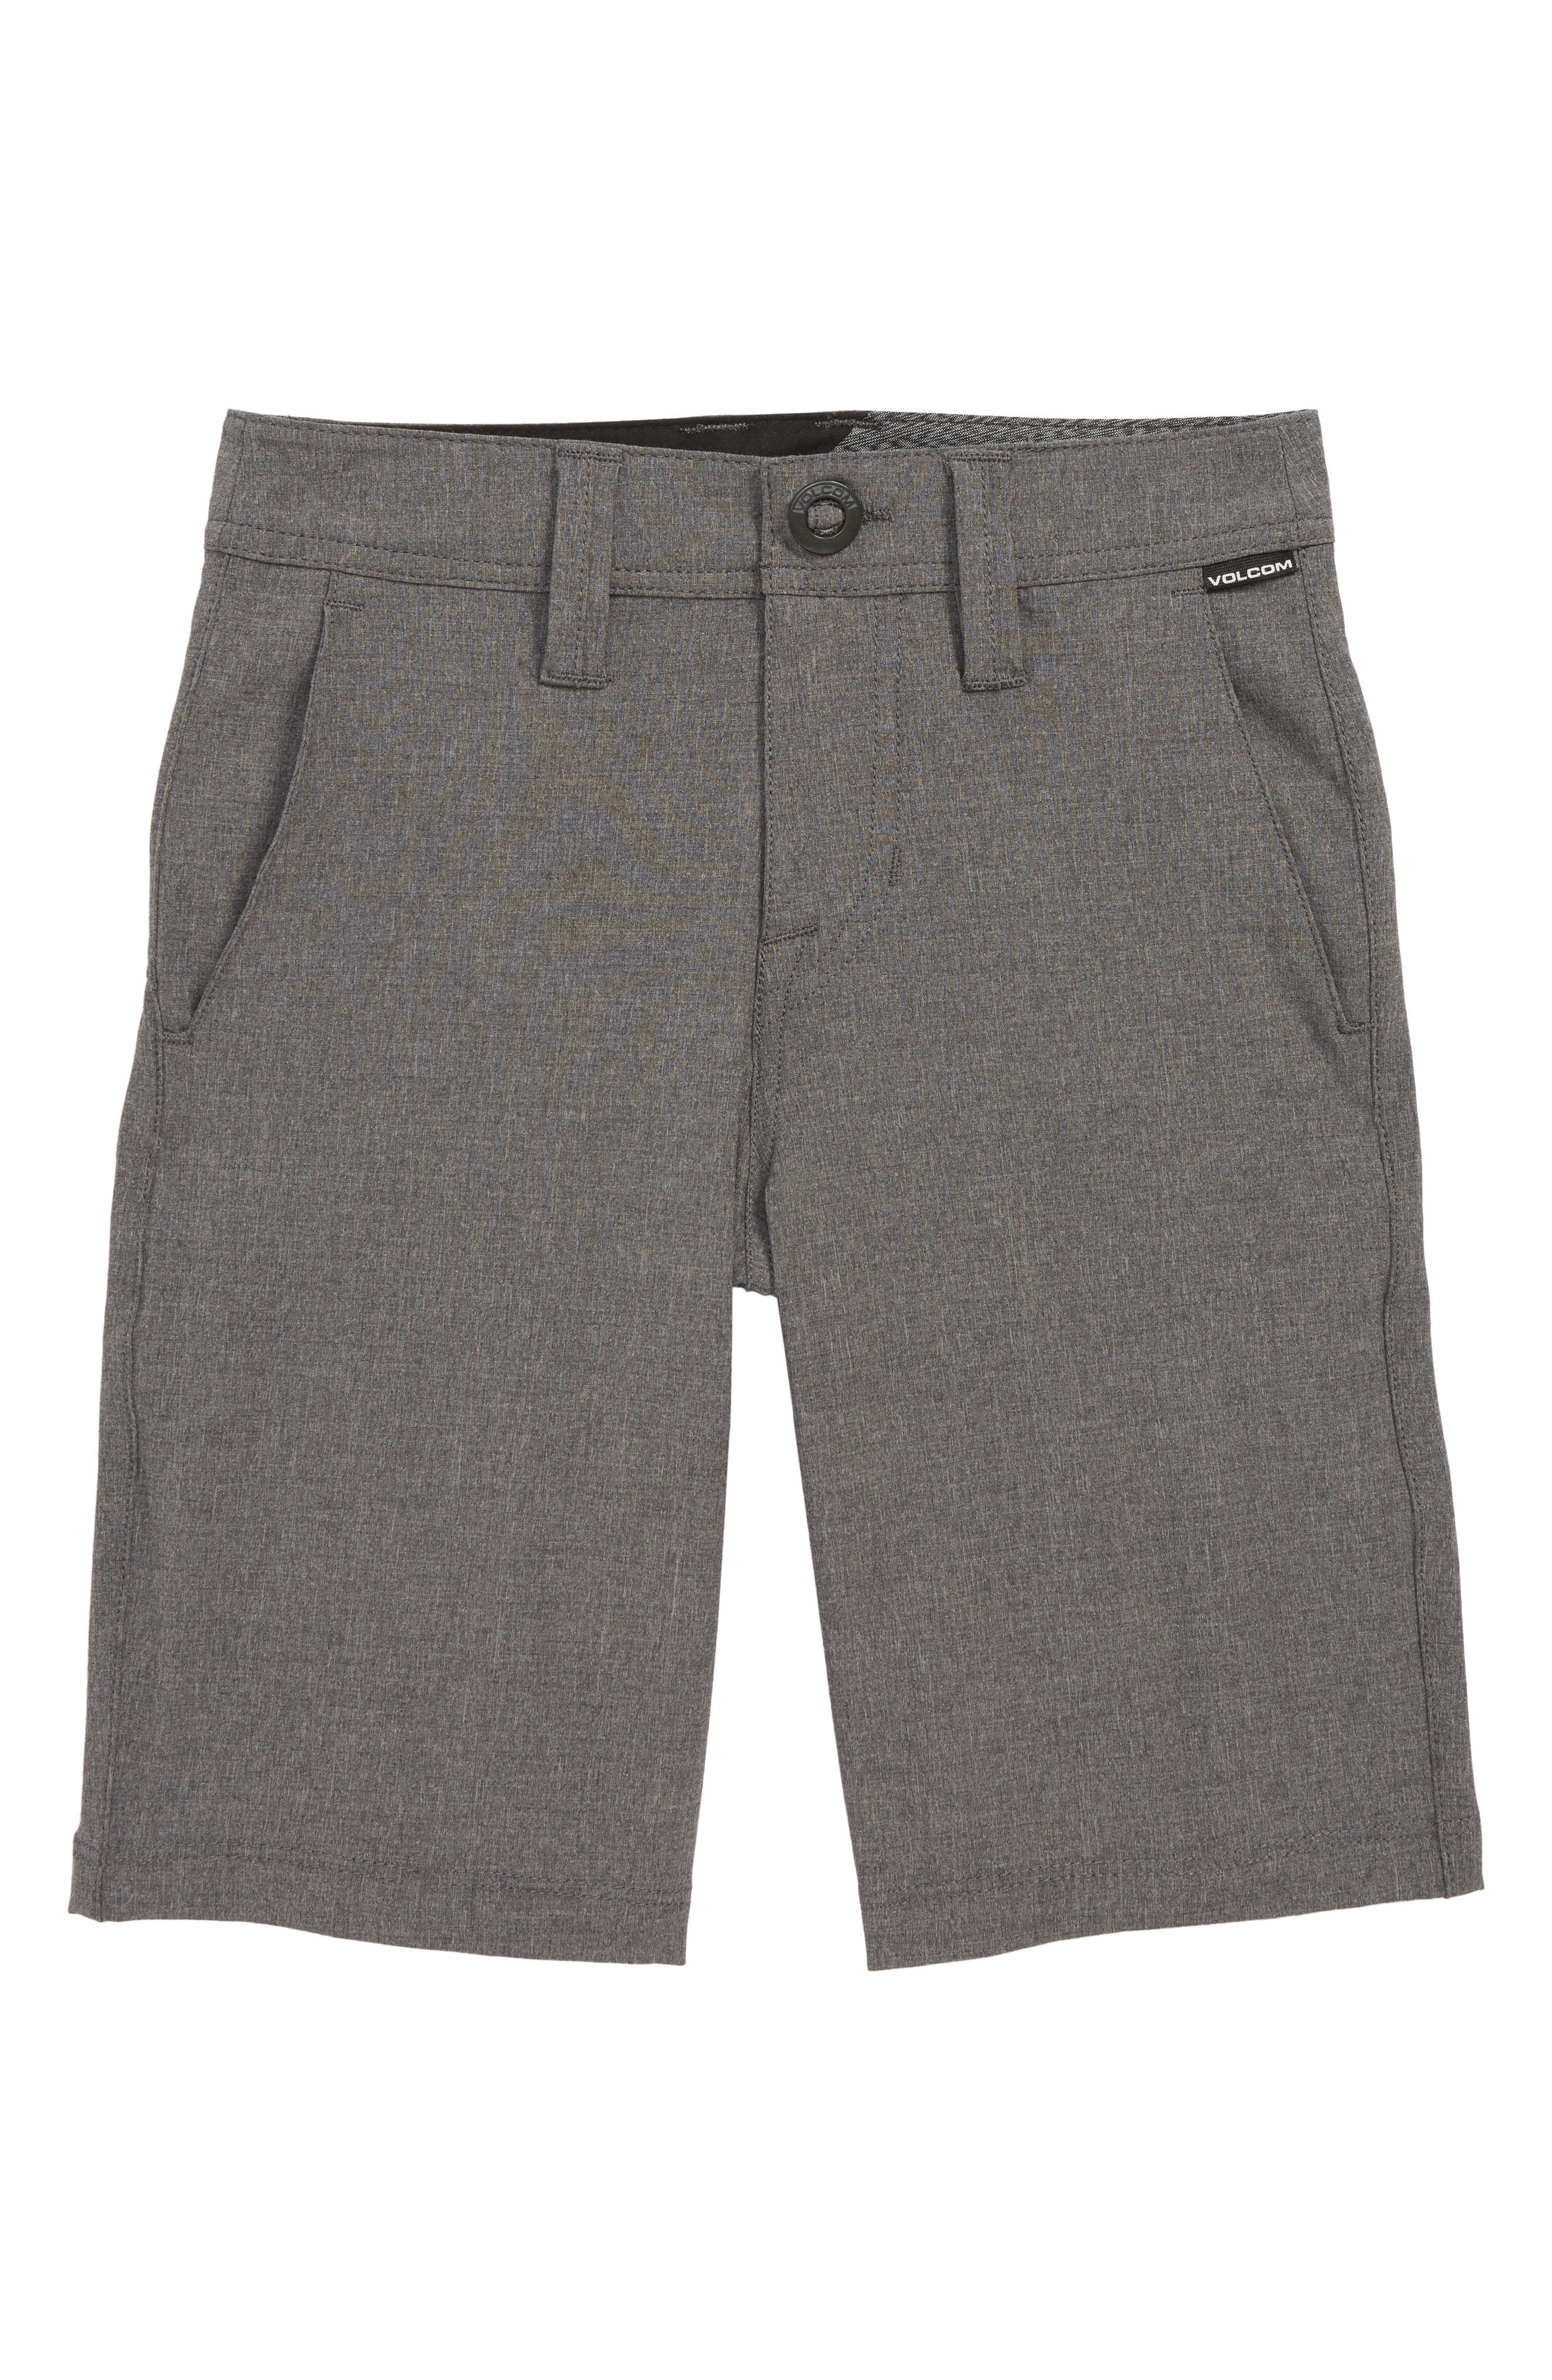 Frickin Surf N' Turf Static Hybrid Board Shorts,                             Main thumbnail 1, color,                             CHARCOAL HEATHER